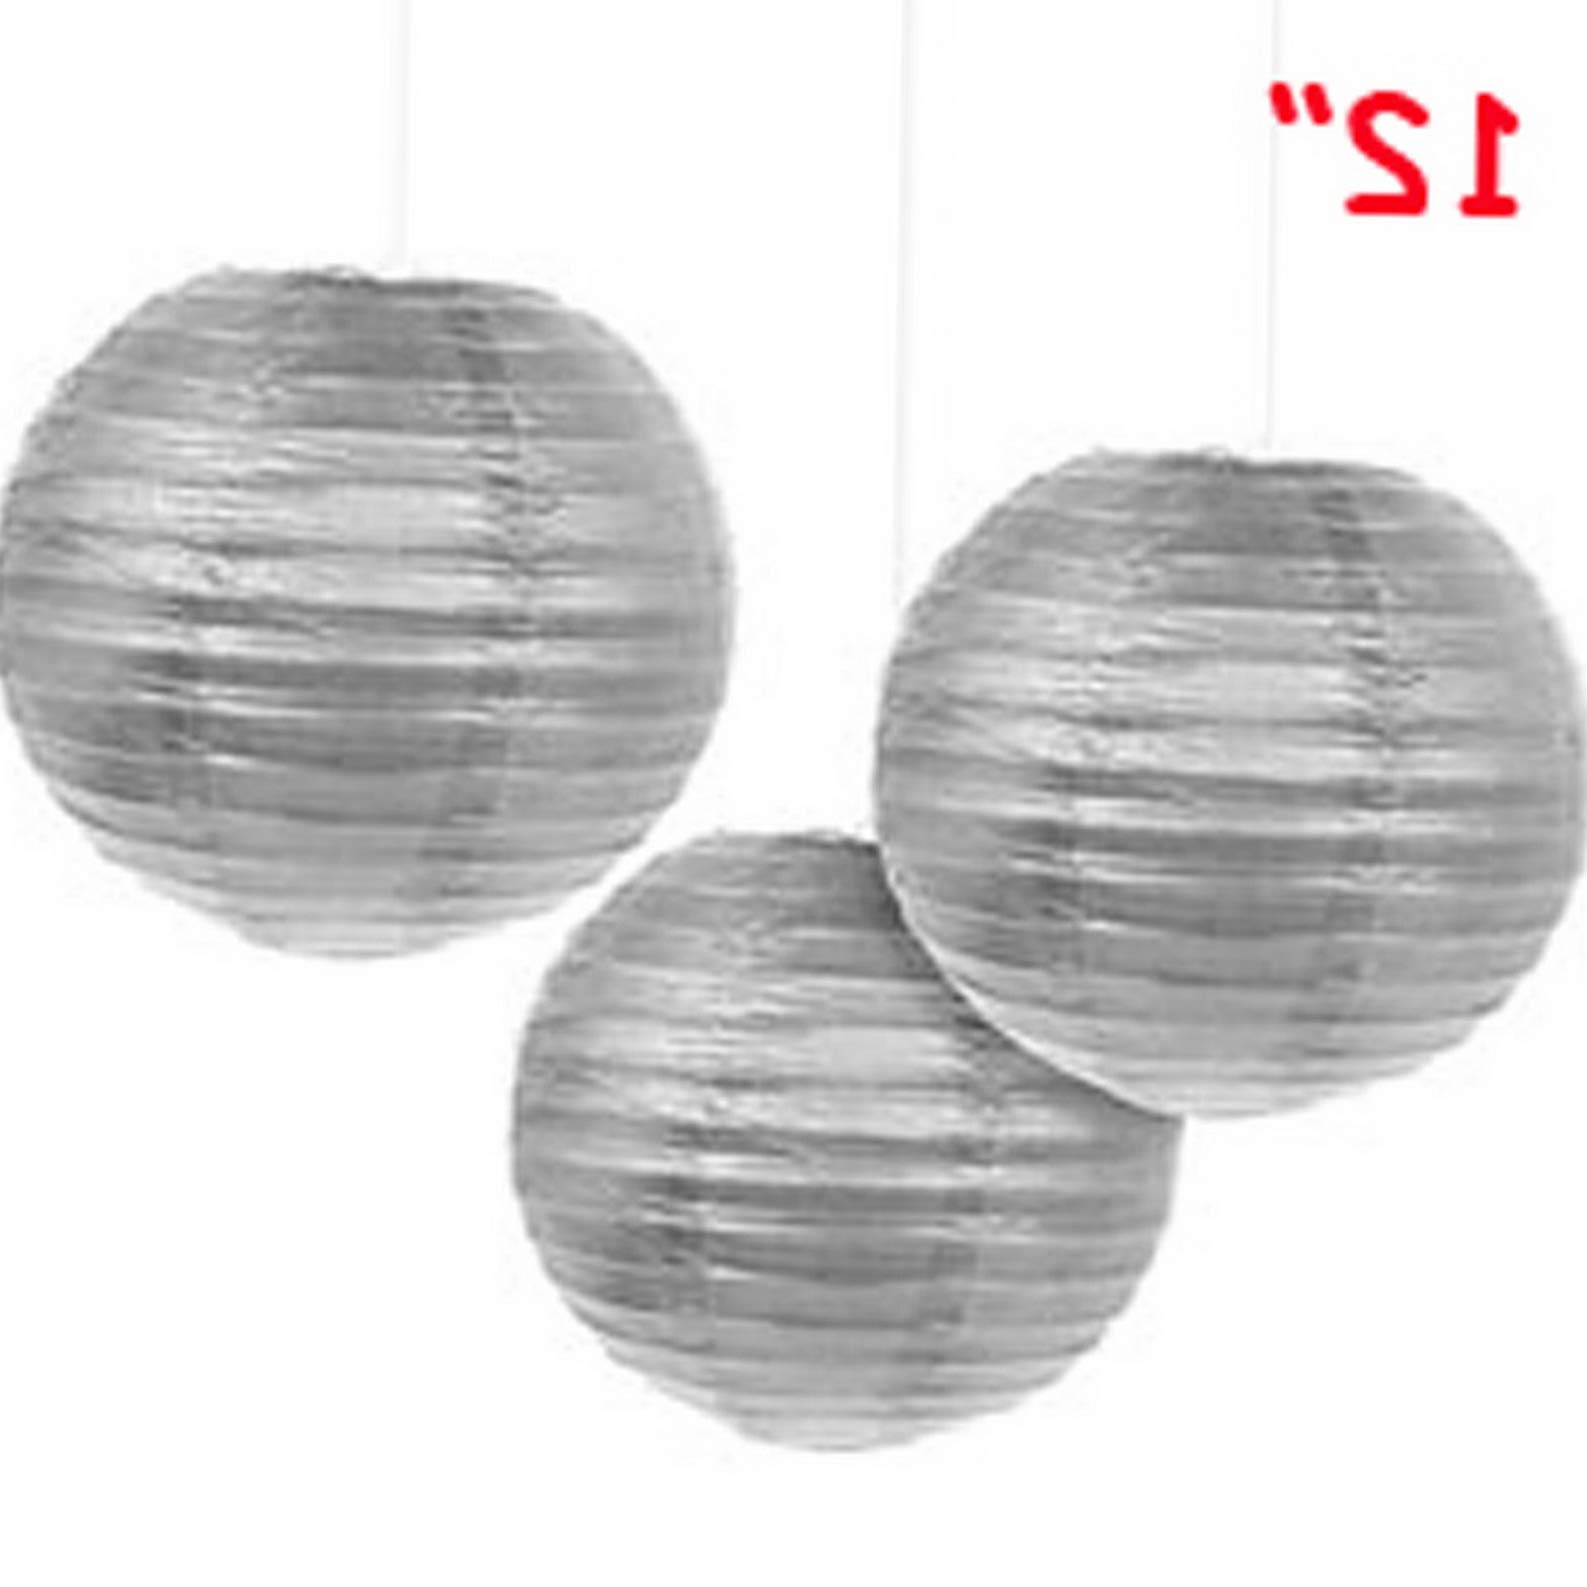 Mikash 12X Round Chinese Paper Lanterns lamp 12 Wedding Party Floral Event Decoration | Model WDDNGDCRTN - 25484 | with Light